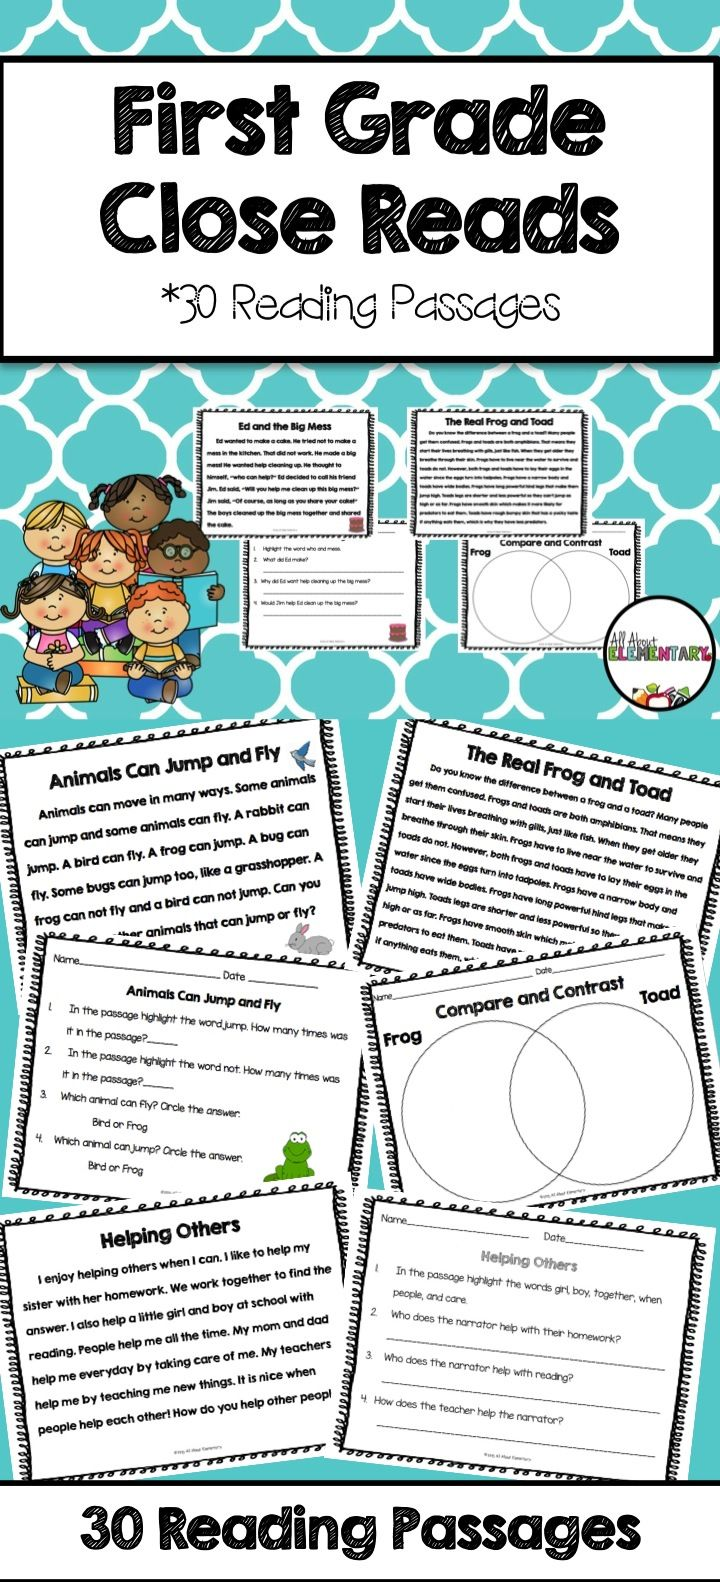 First Grade Close Reads - Use this 72 page resource to help your 1st, 2nd, or 3rd grade classroom and homeschool students with their close reading skills. You get 30 close reads in this pack - 18 non-fiction (or informational text) and 12 fiction. Also in